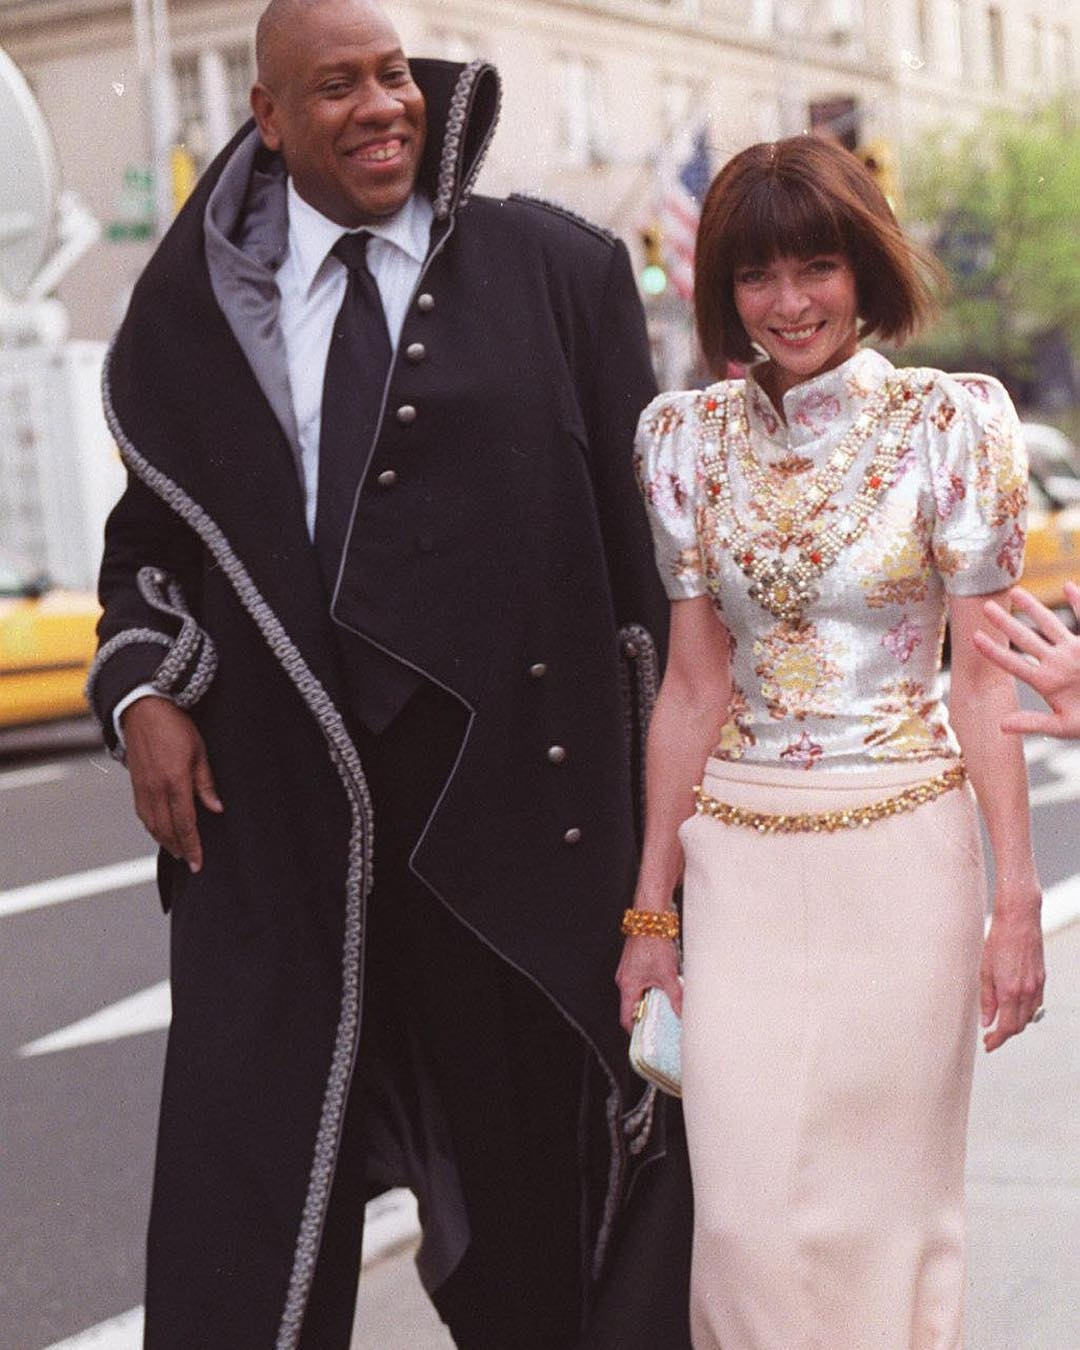 André Leon Talley Anna Wintour 2020 News Tom Ford Latest Memoir The Chiffon Trenches